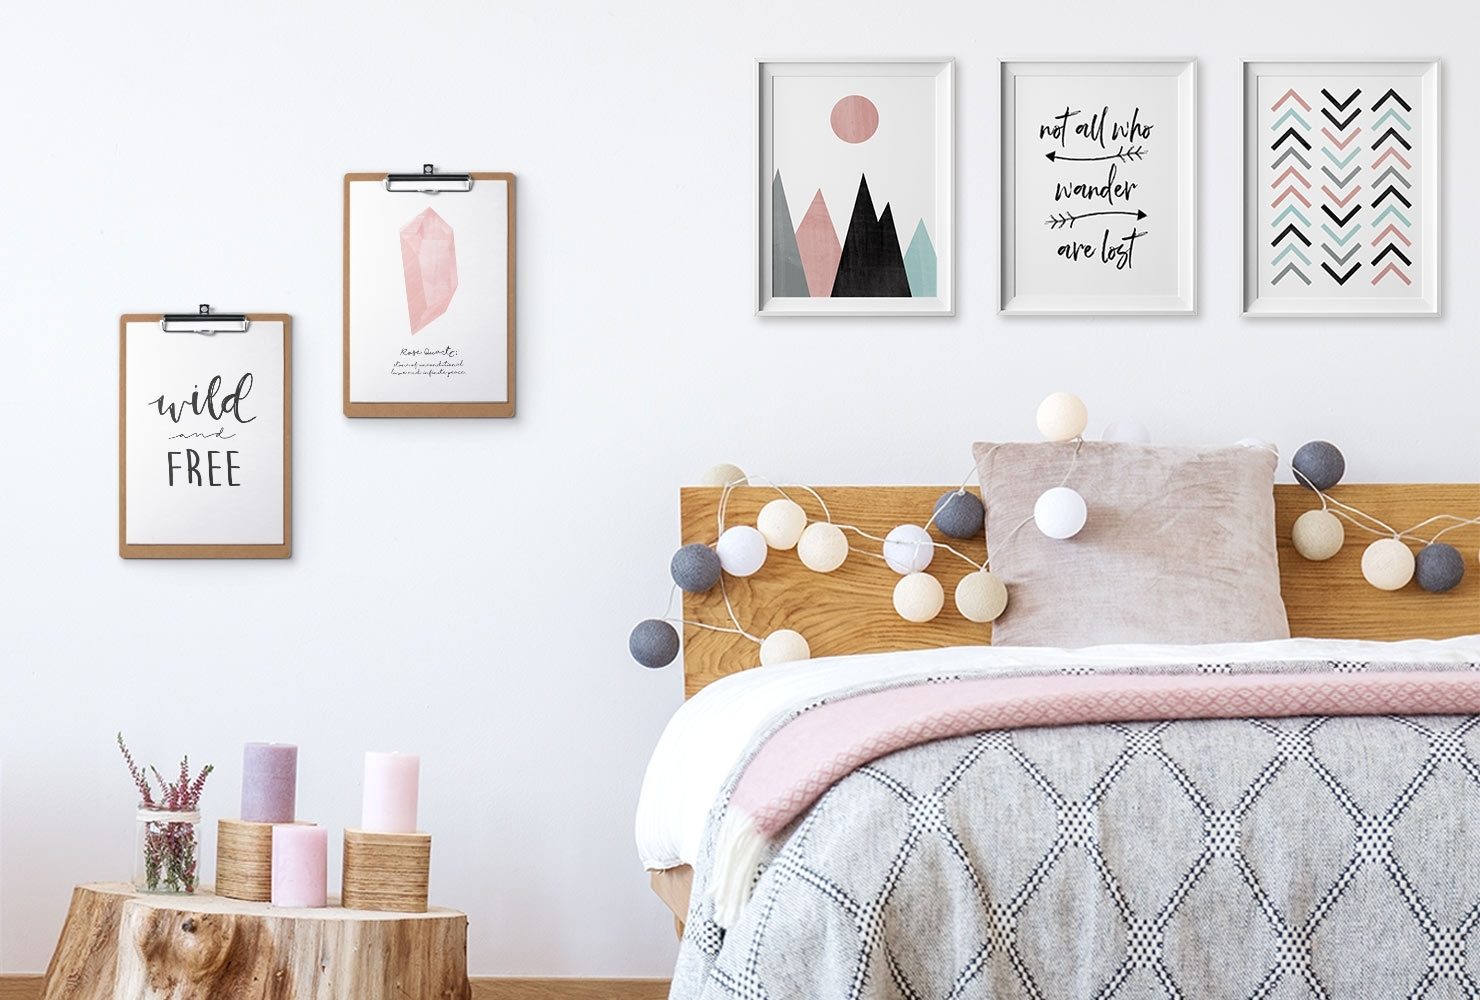 24 Diy Bedroom Decor Ideas To Inspire You (With Printables) | Shutterfly in Bedroom Wall Art (Image 2 of 20)